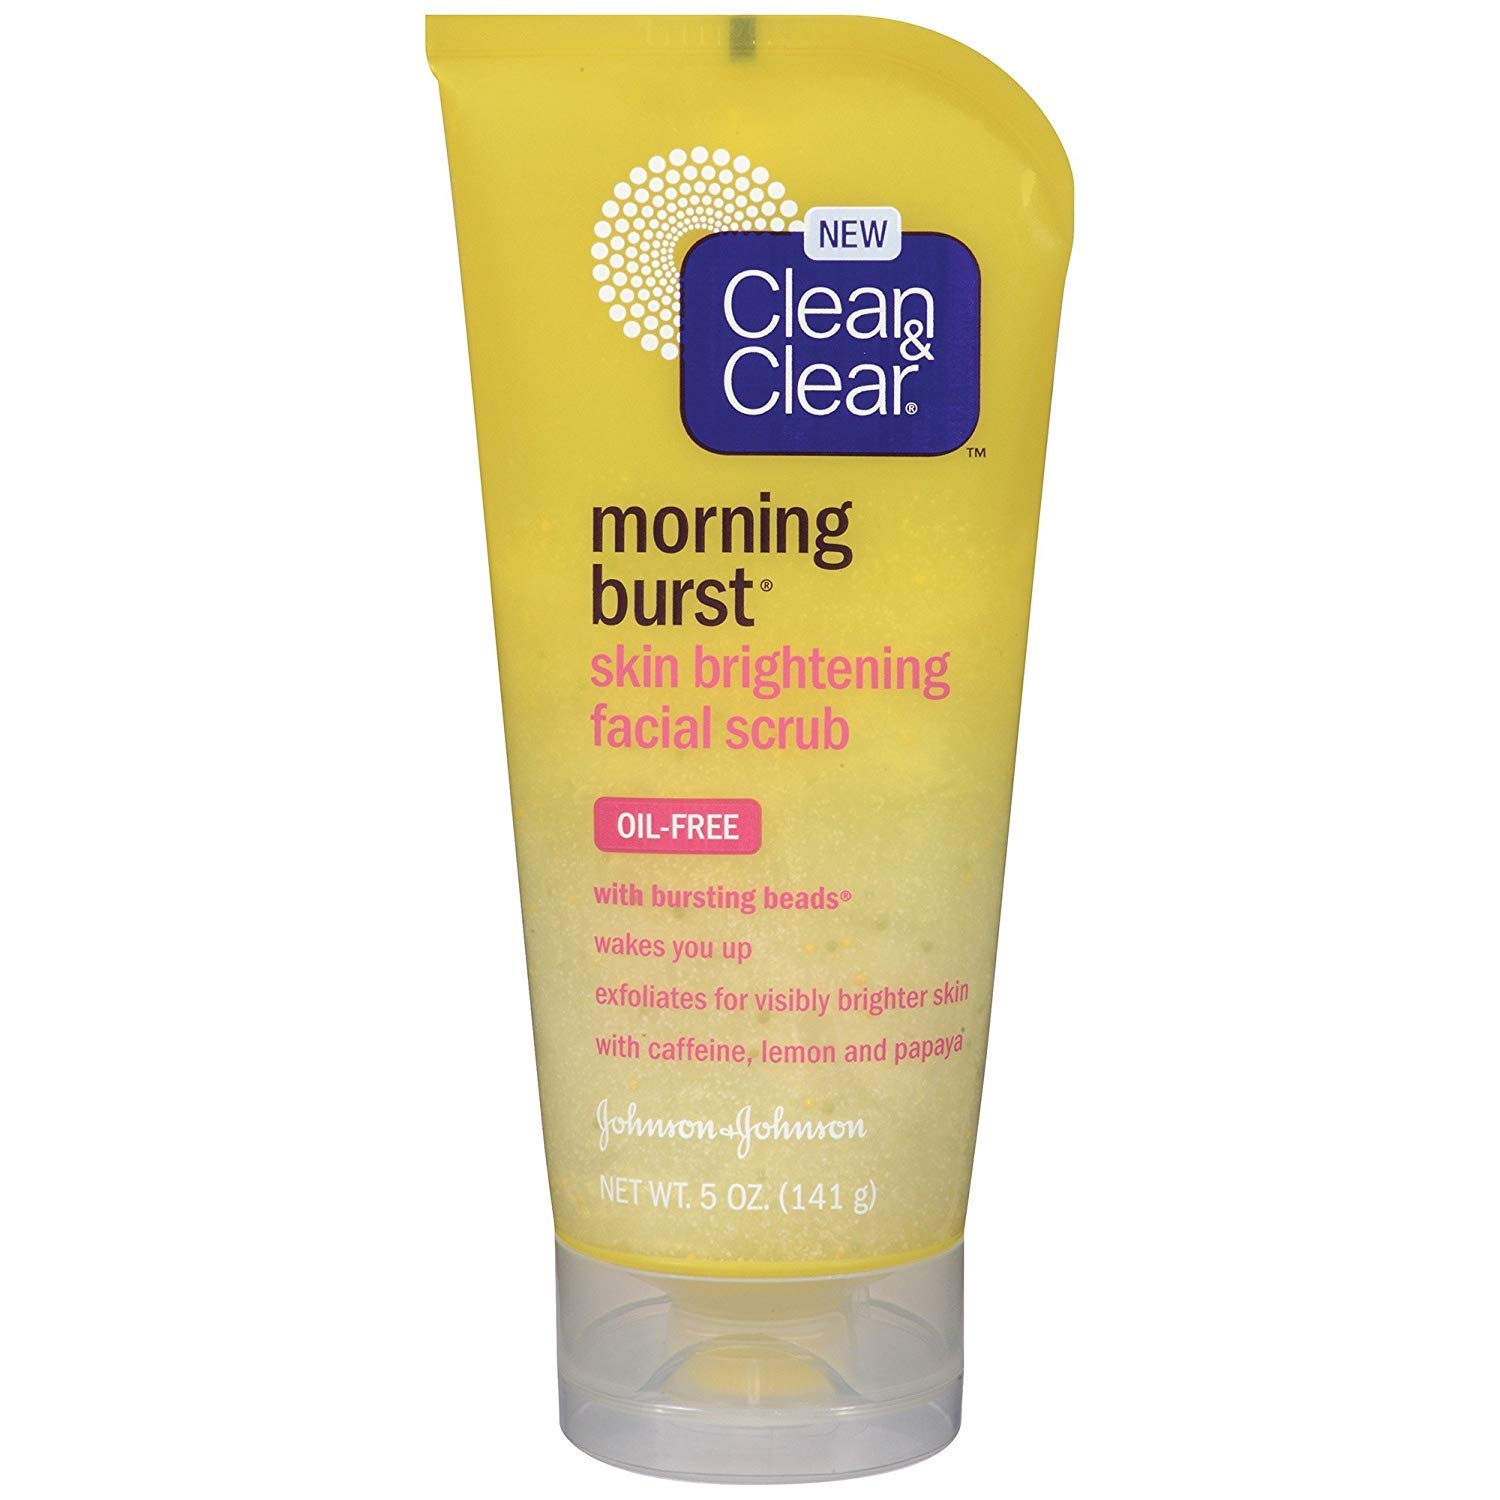 Clean & Clear Scrub Morning Burst Brightening Oil-Free 5 Ounce (145ml) (2 Pack)